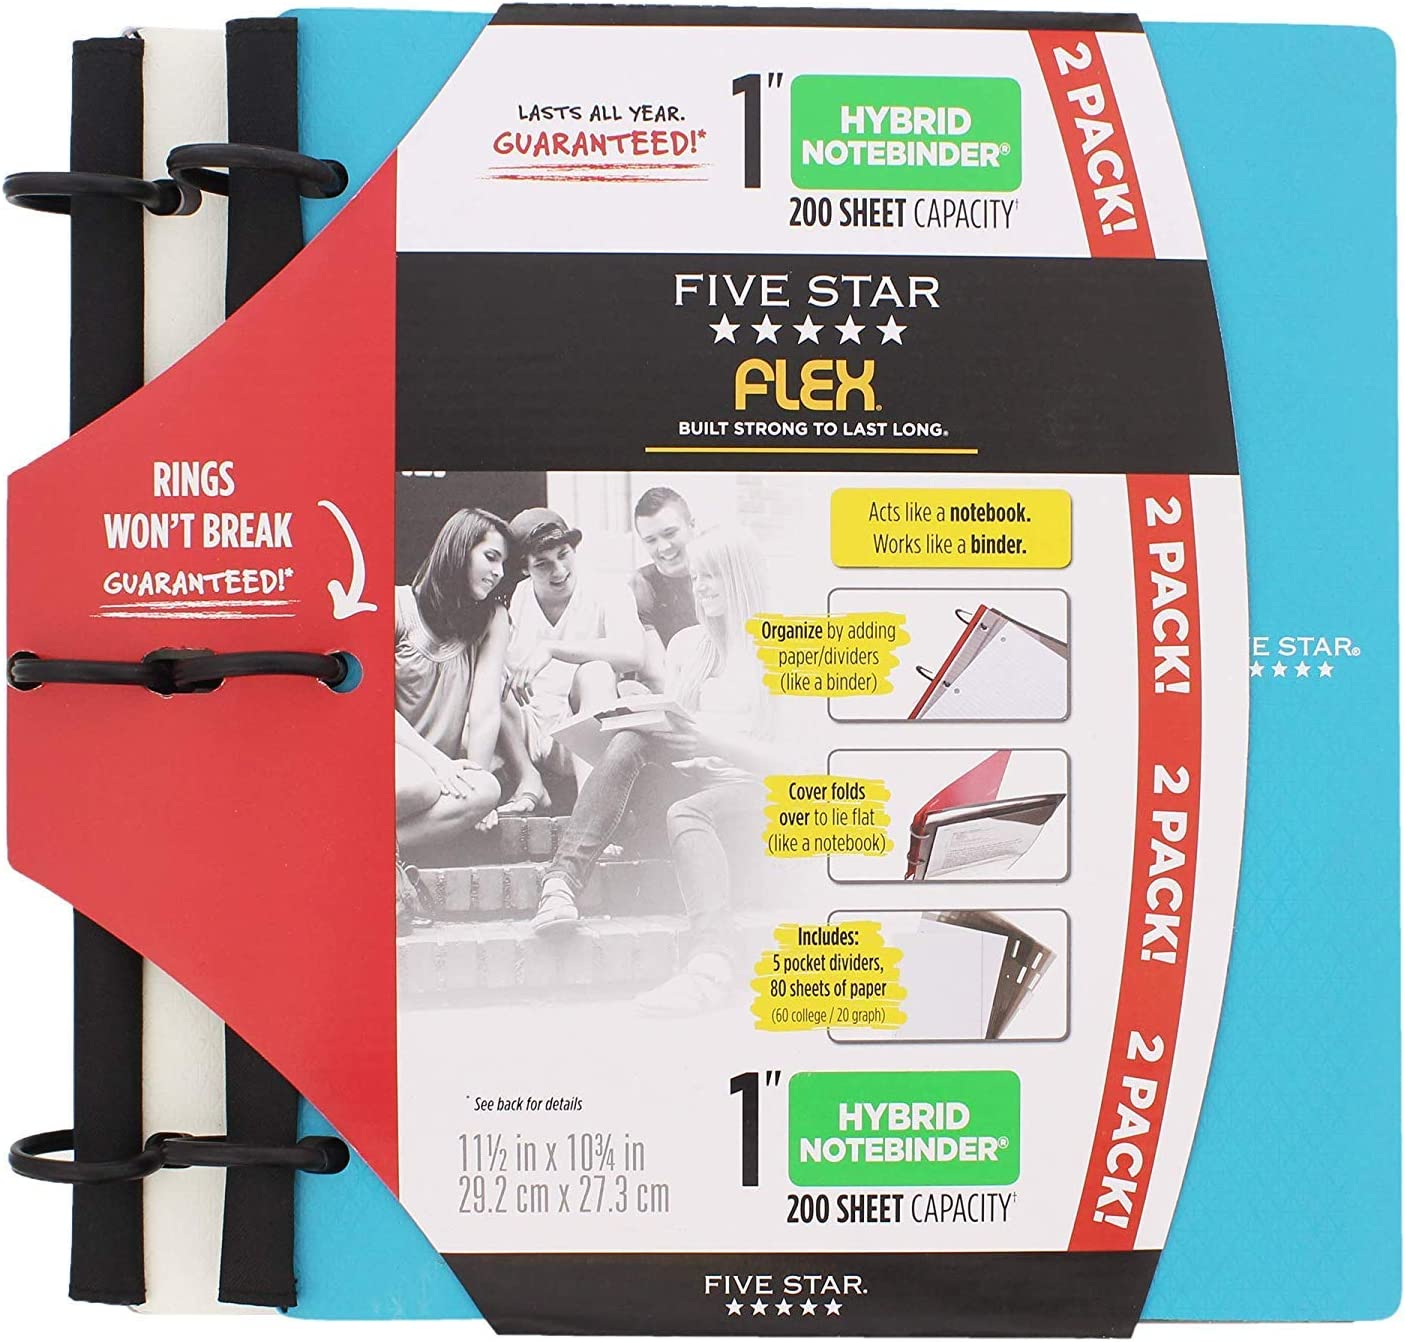 Five Star Flex Hybrid NoteBinder - 1 Inch Capacity, 11.5 x 11 Inches, Notebook and Binder All-in-One - 2 Pack - White/Teal [並行輸入品]